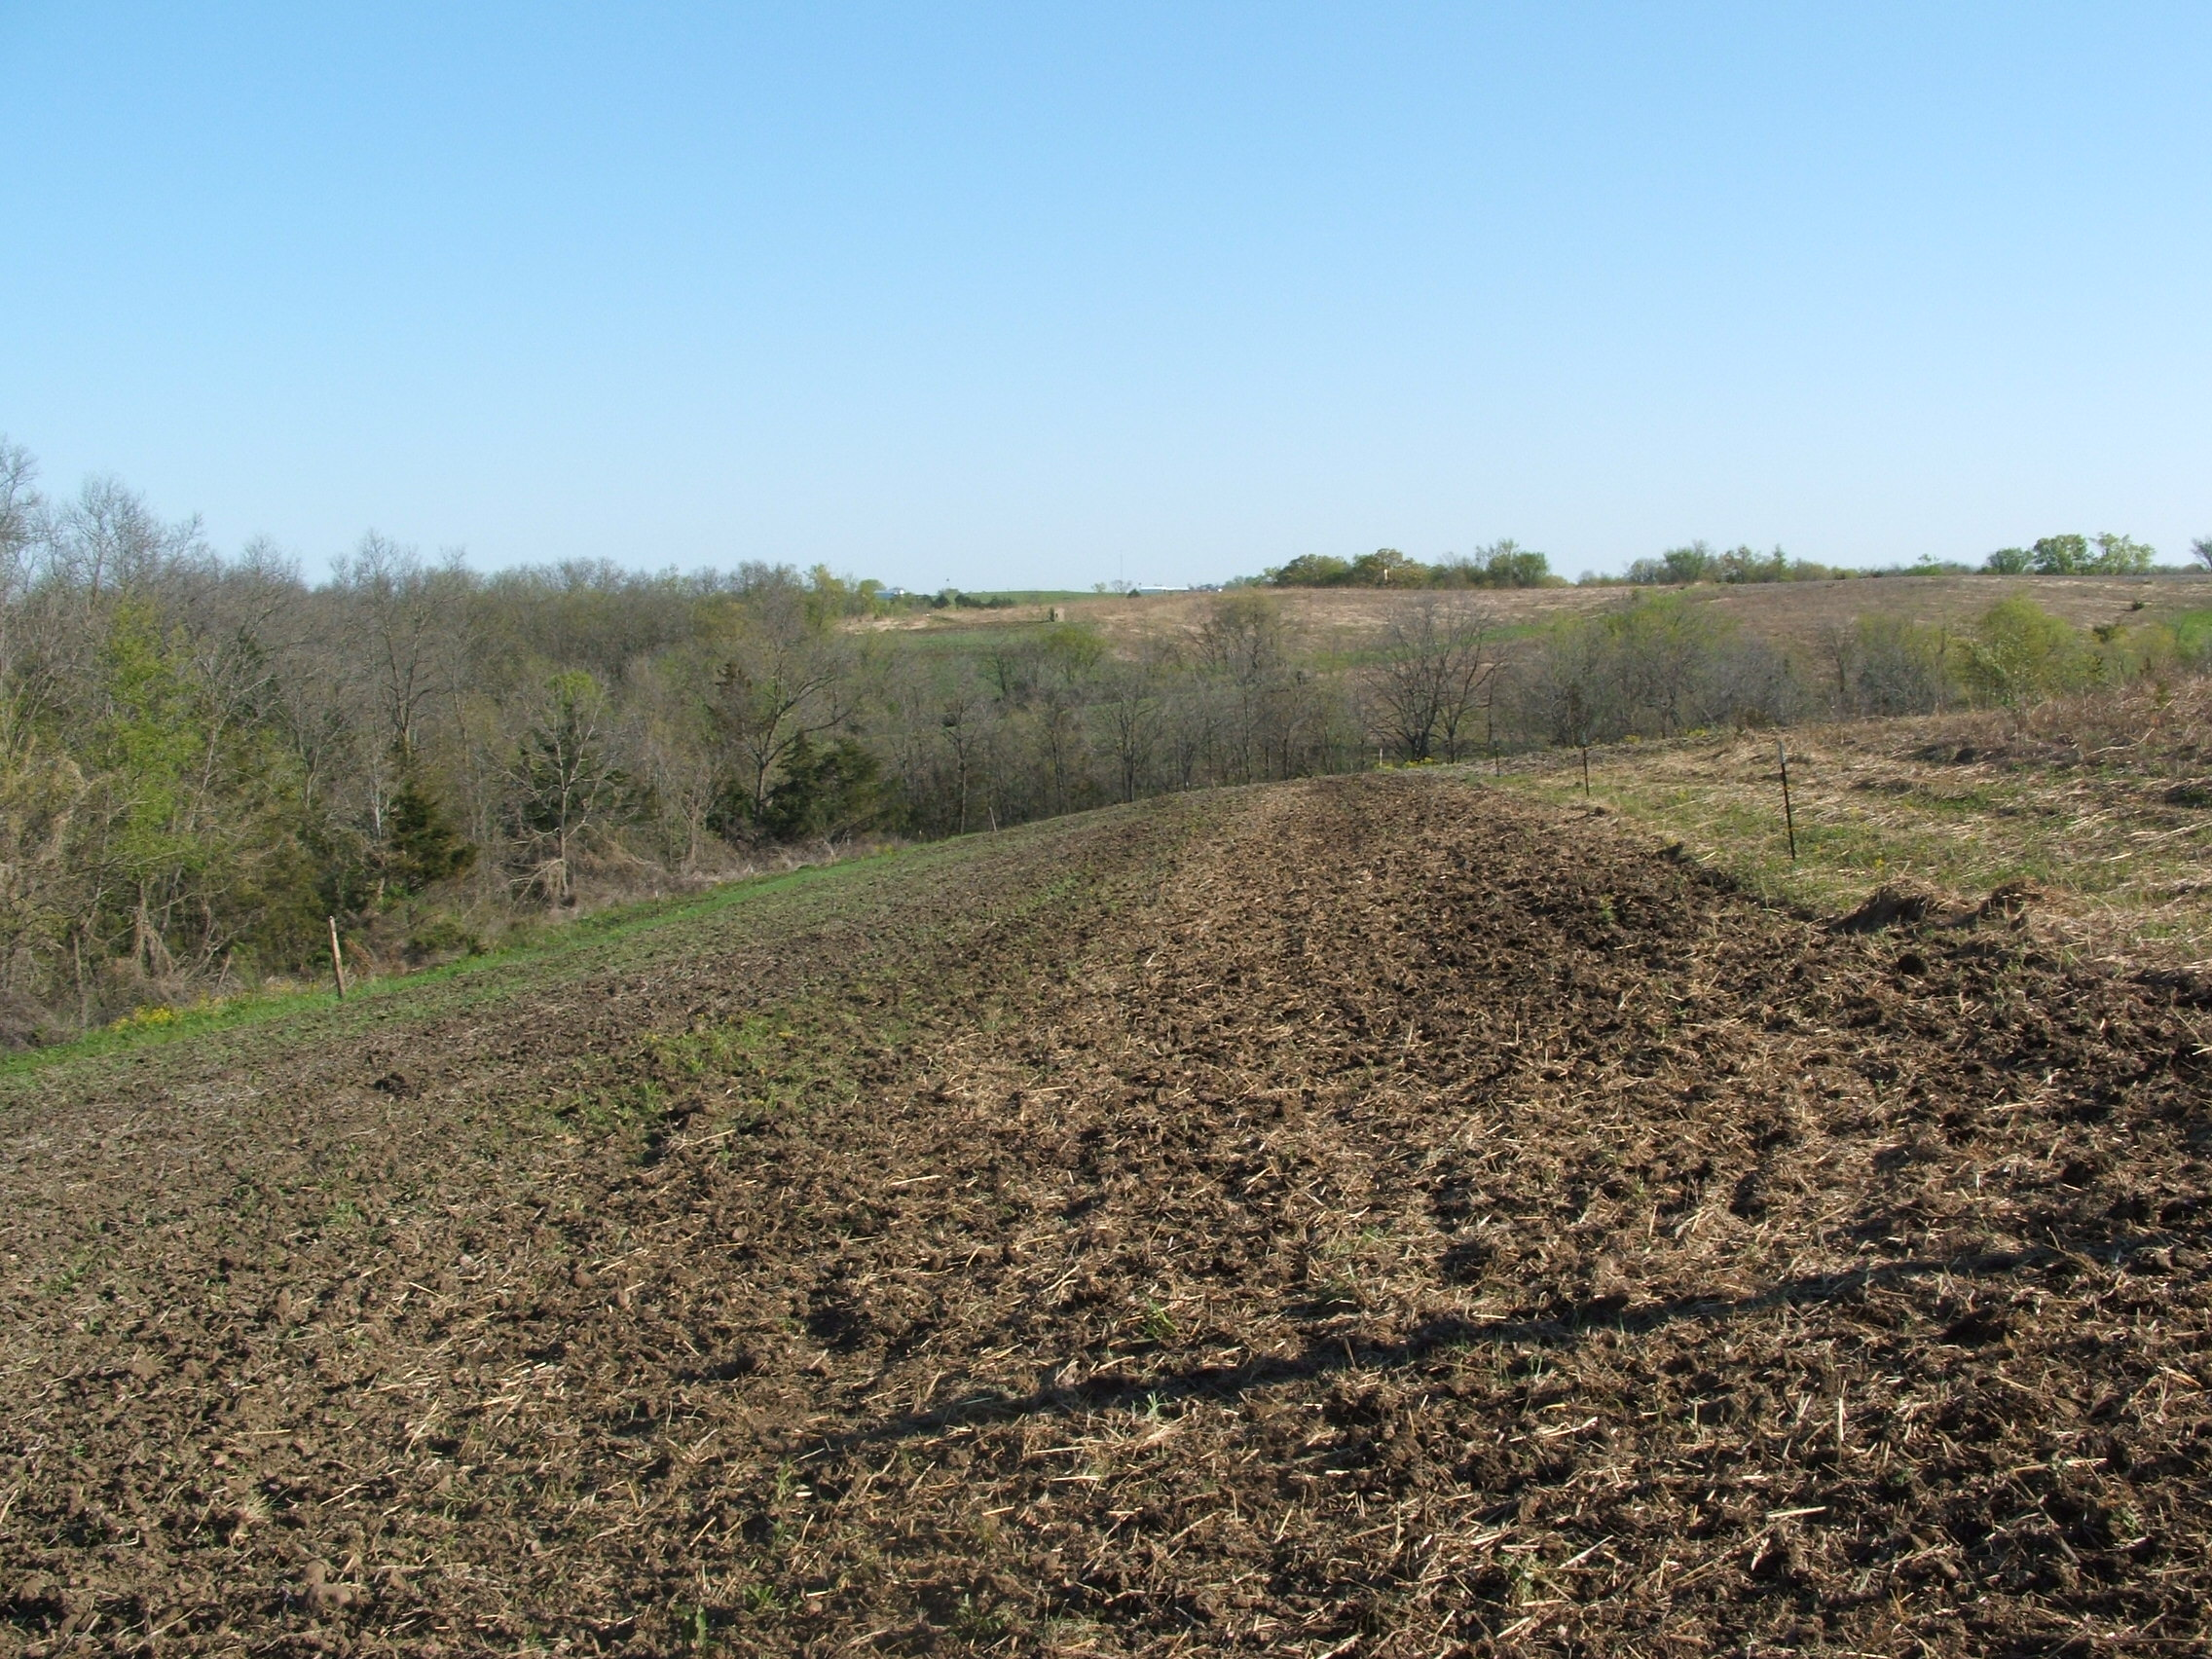 One of the finished food plots.  This plot is electric fenced in and planted in corn.  Just like the soybeans, I spread the corn seed and fertilizer and then disc them in.